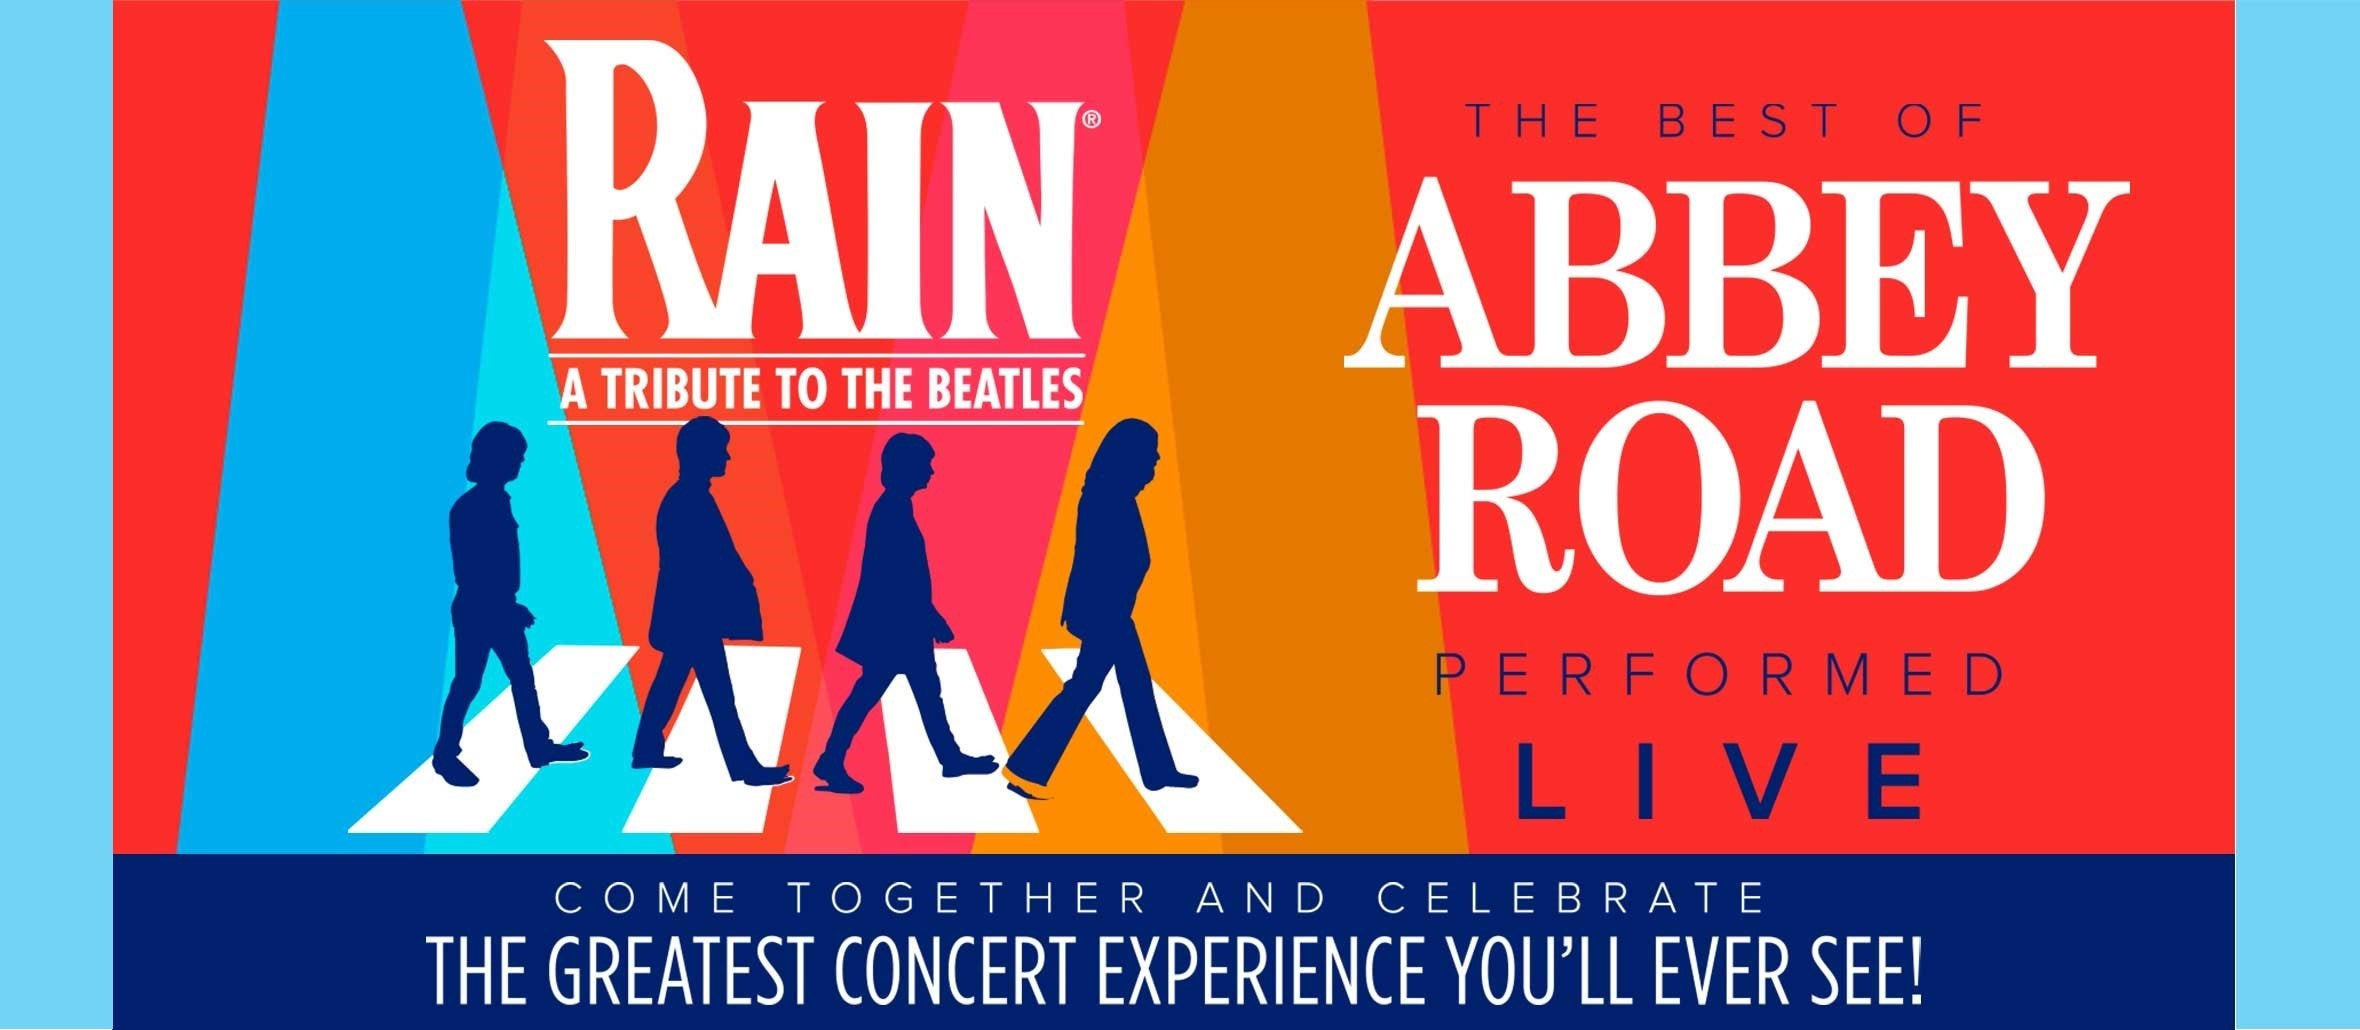 RAIN: A Tribute to The Beatles has been postponed